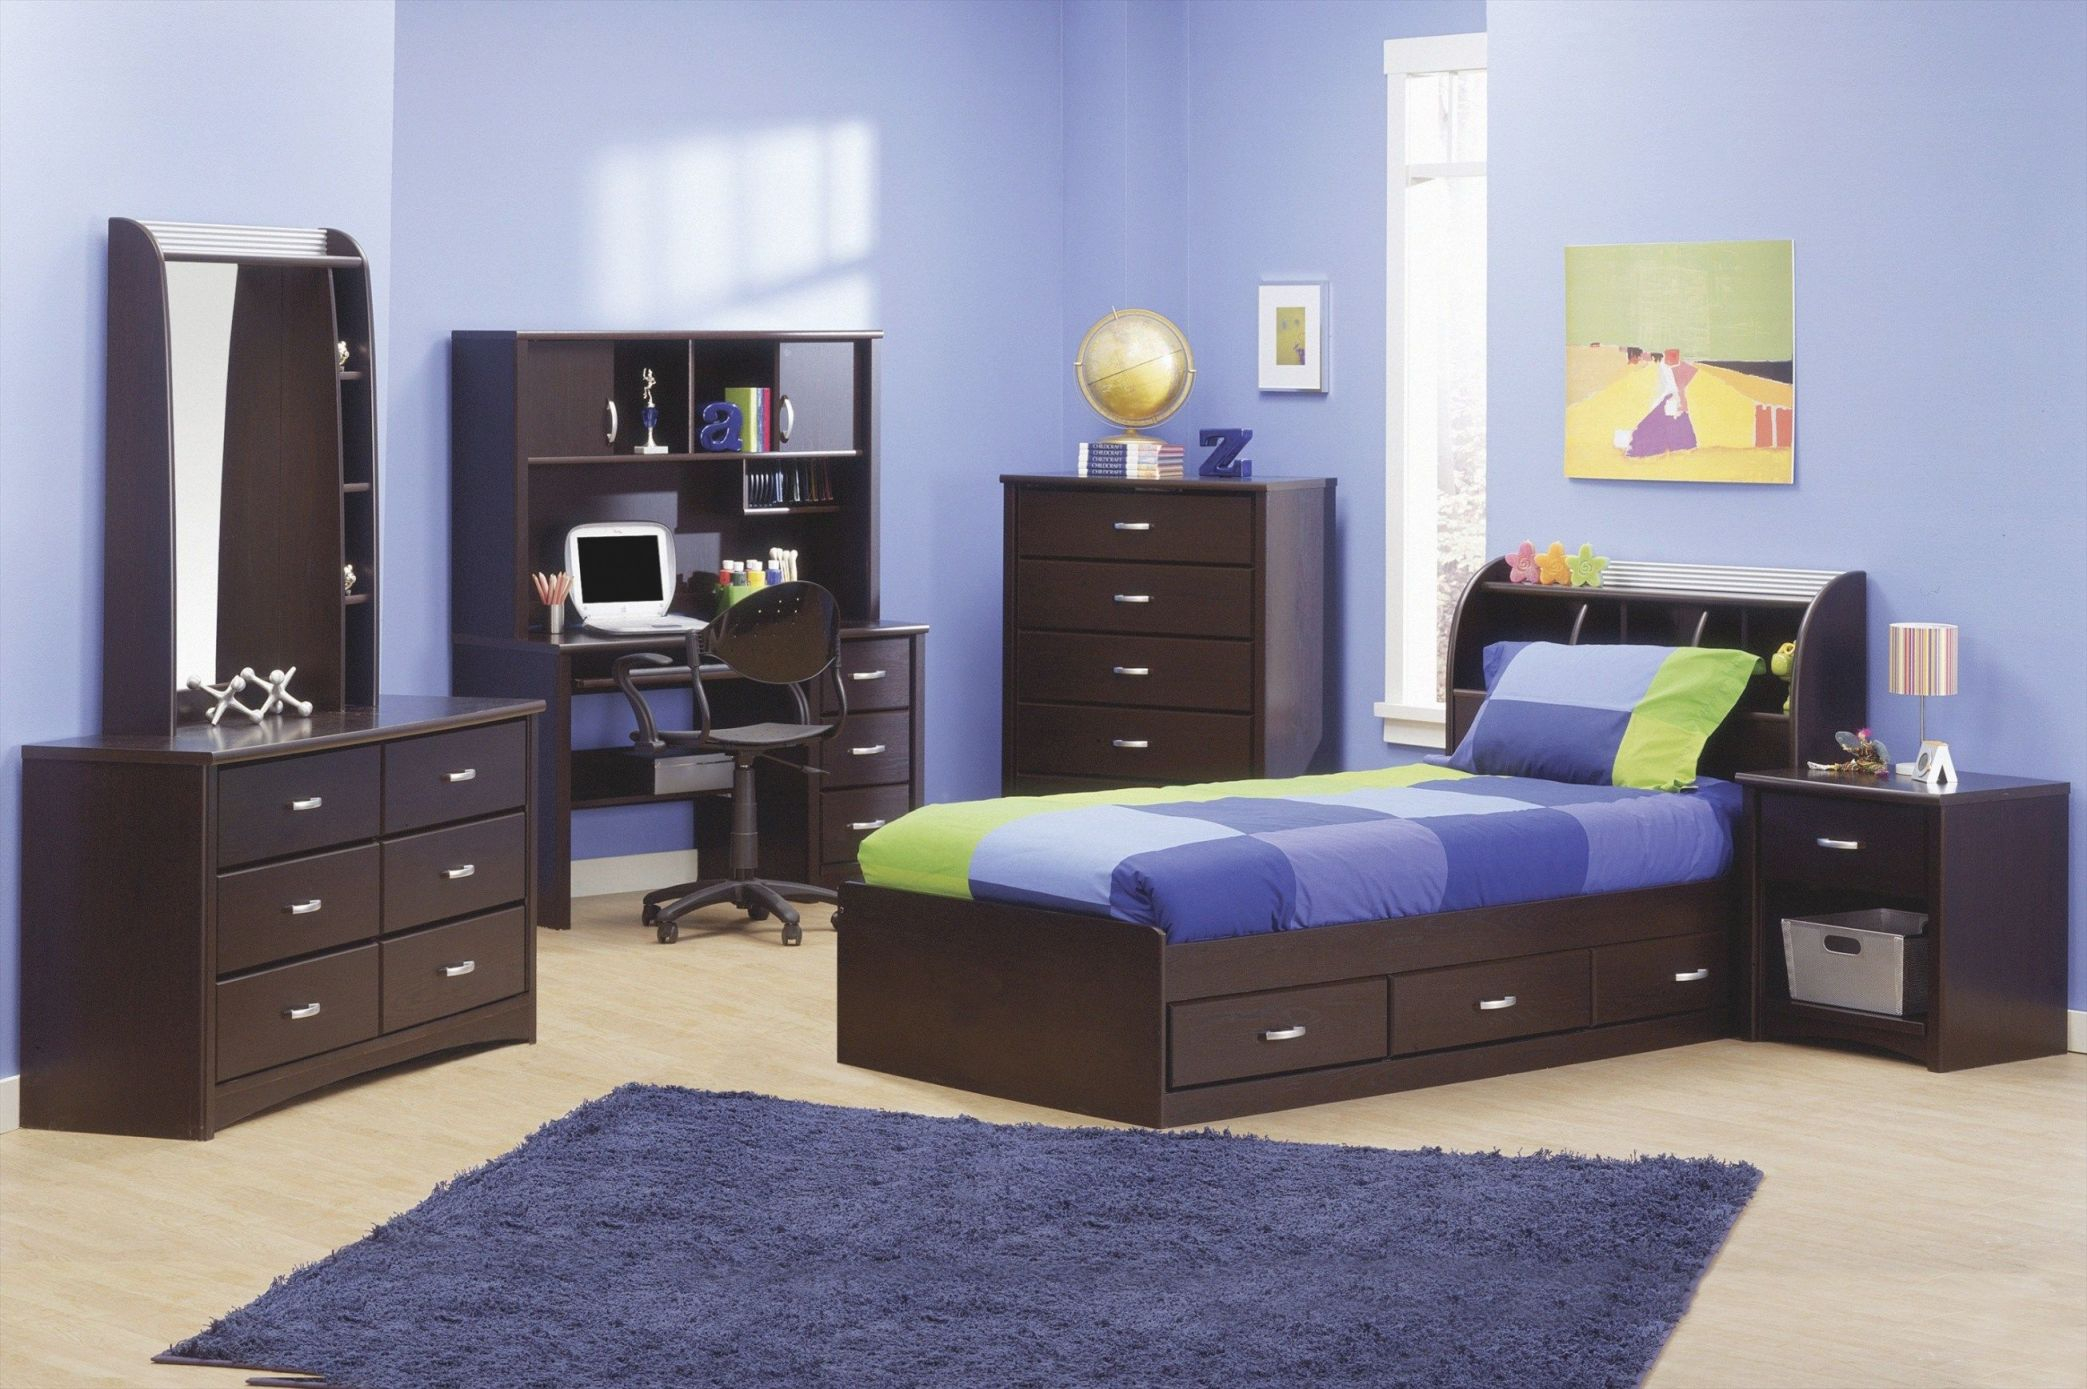 30 Beautiful Image Of Teen Boy Bedroom Furniture | Boys inside